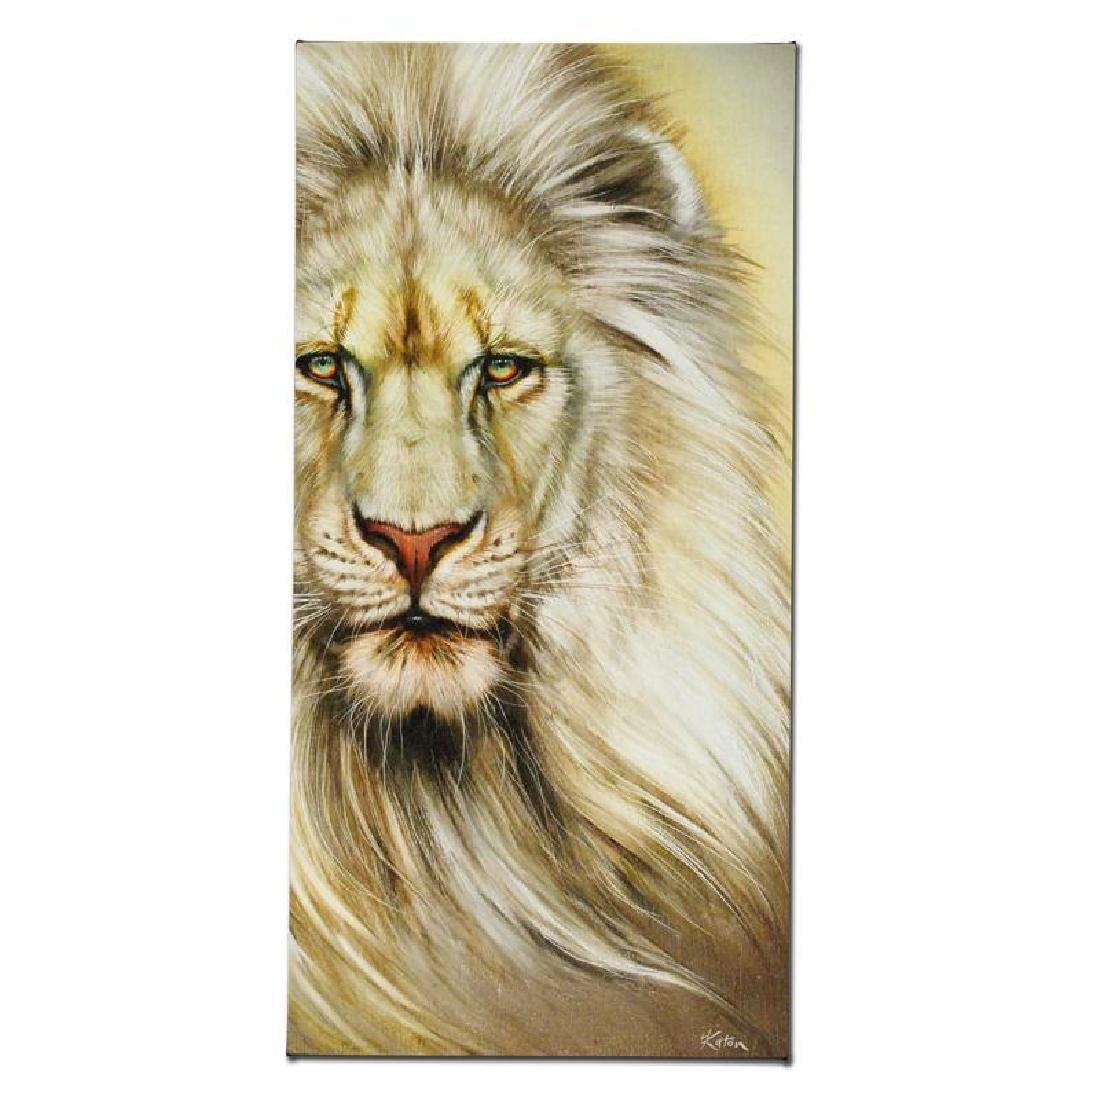 """White Lion"" Limited Edition Giclee on Canvas by Martin - 5"